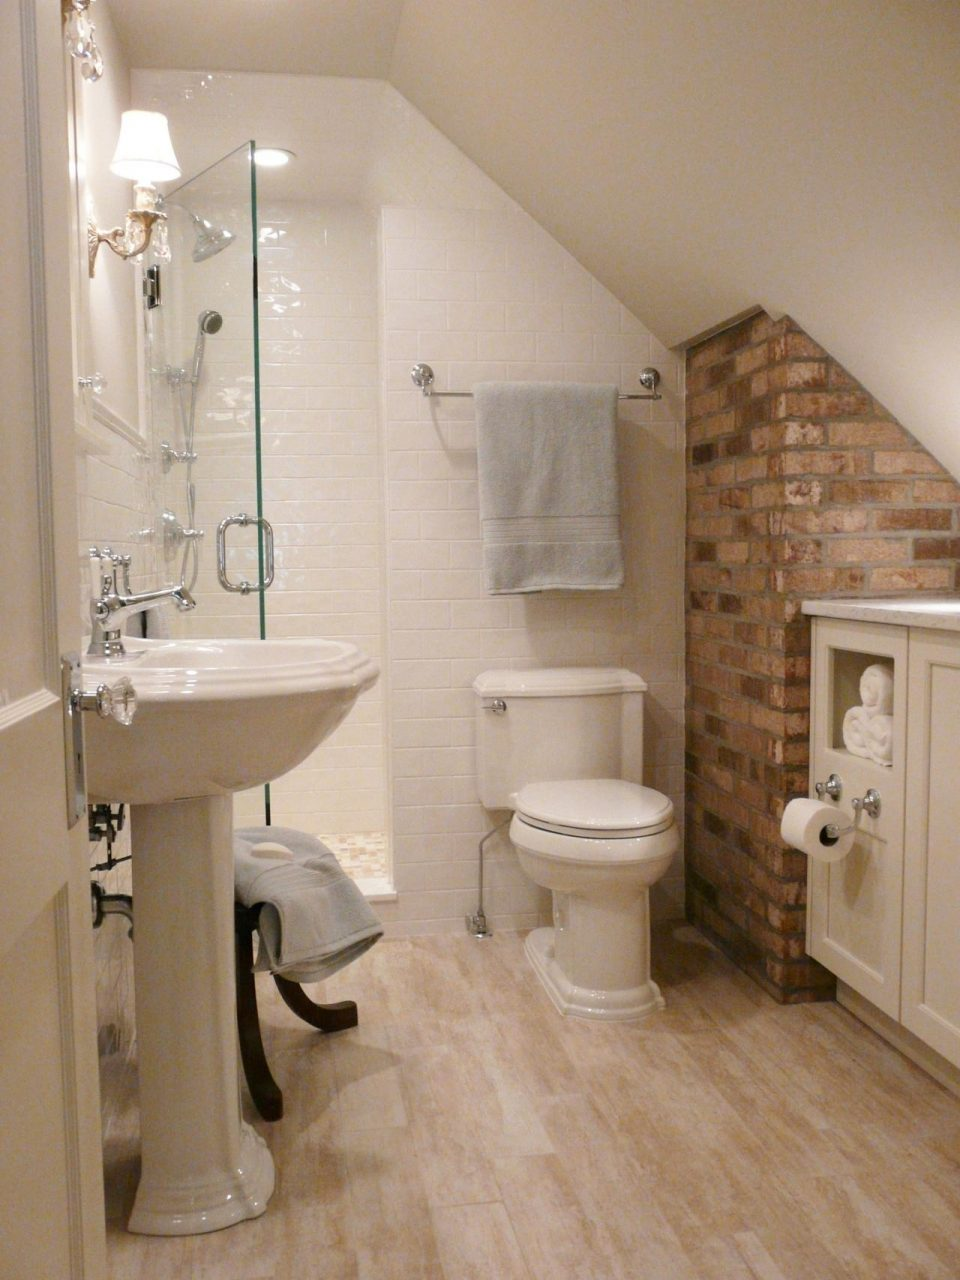 Small Attic Bathroom Layout Of Bathroom Design Ideas With Hd